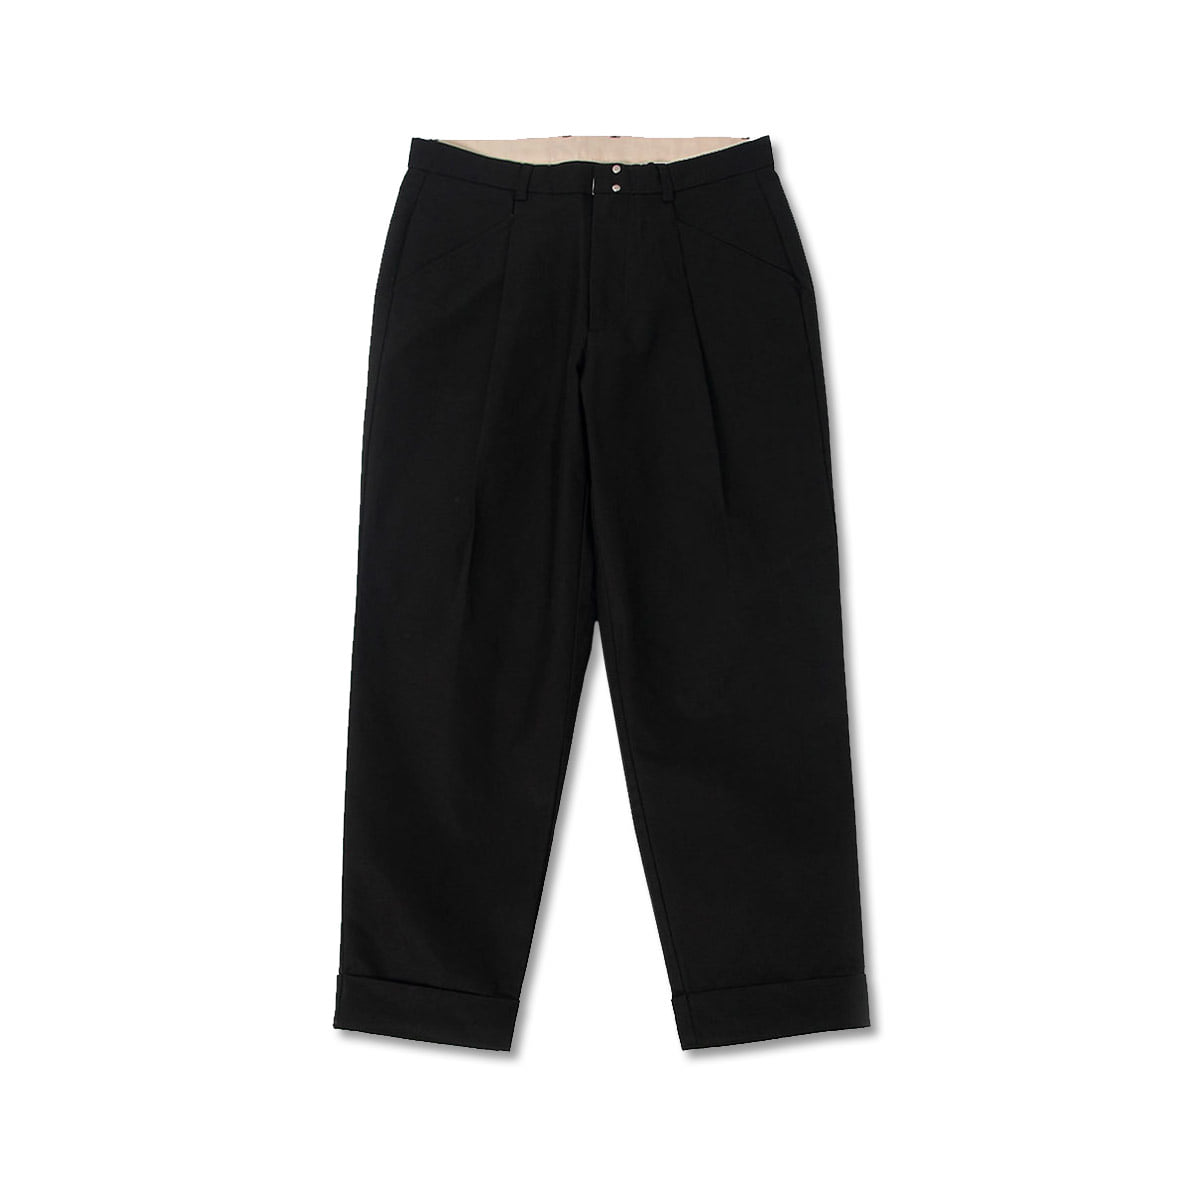 [BEHEAVYER] STANDARD TUCK PANTS 'BLACK'